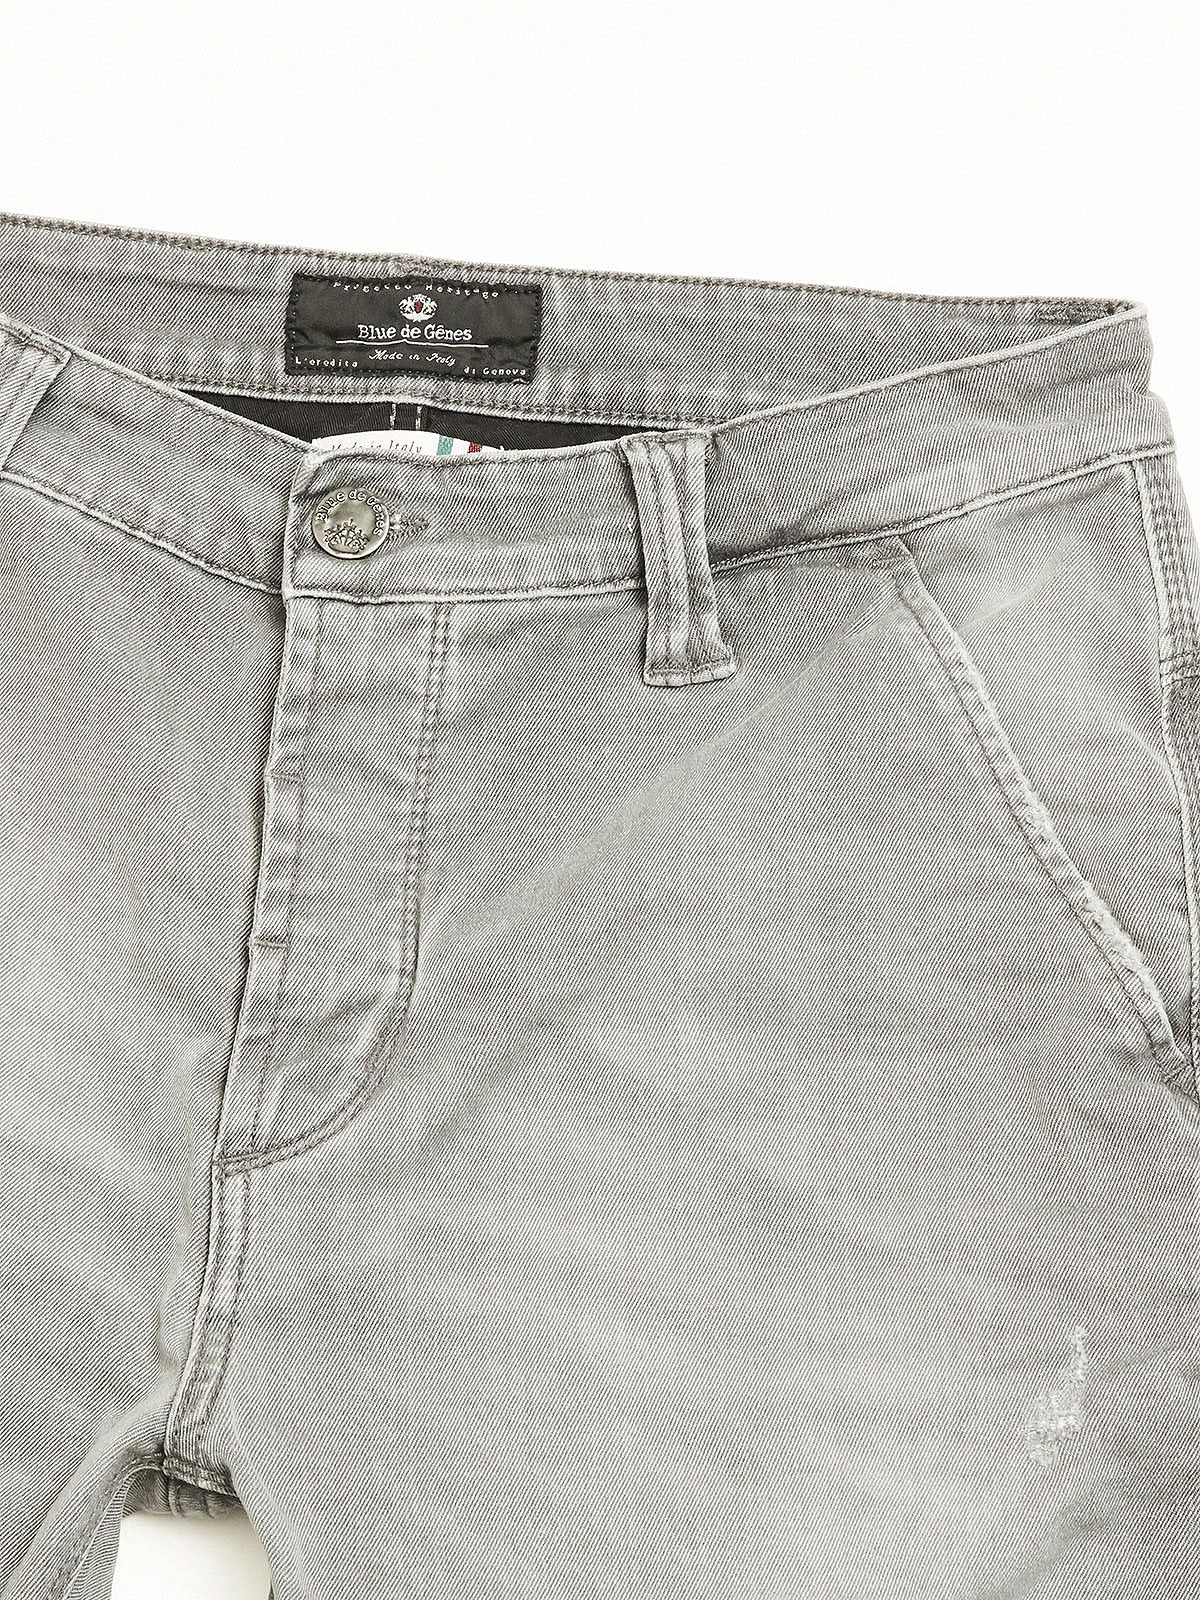 Paulo Carbon Light Trousers